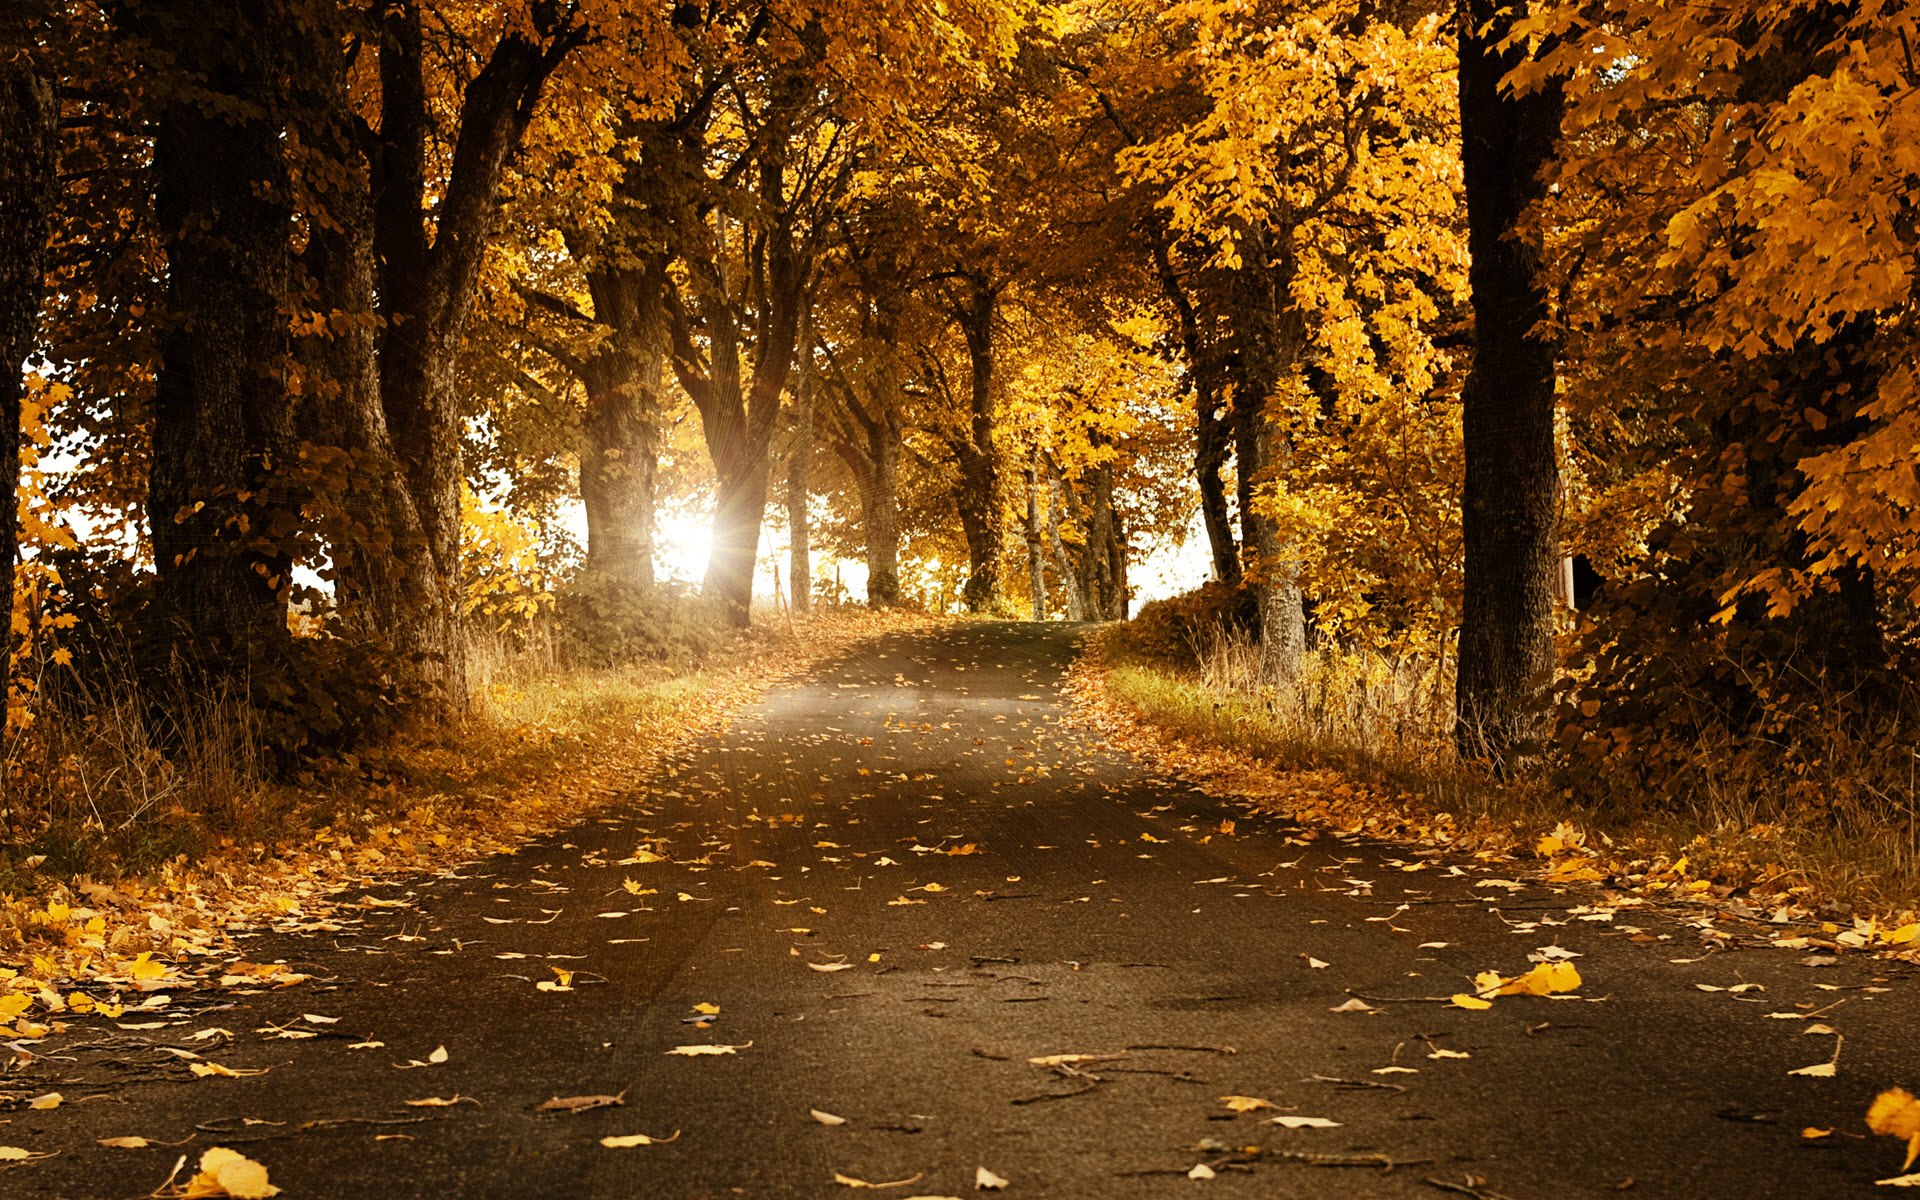 Trees Park Leaf Fall Autumn Foliage covered park wallpaper | Wallpaper Wide HD